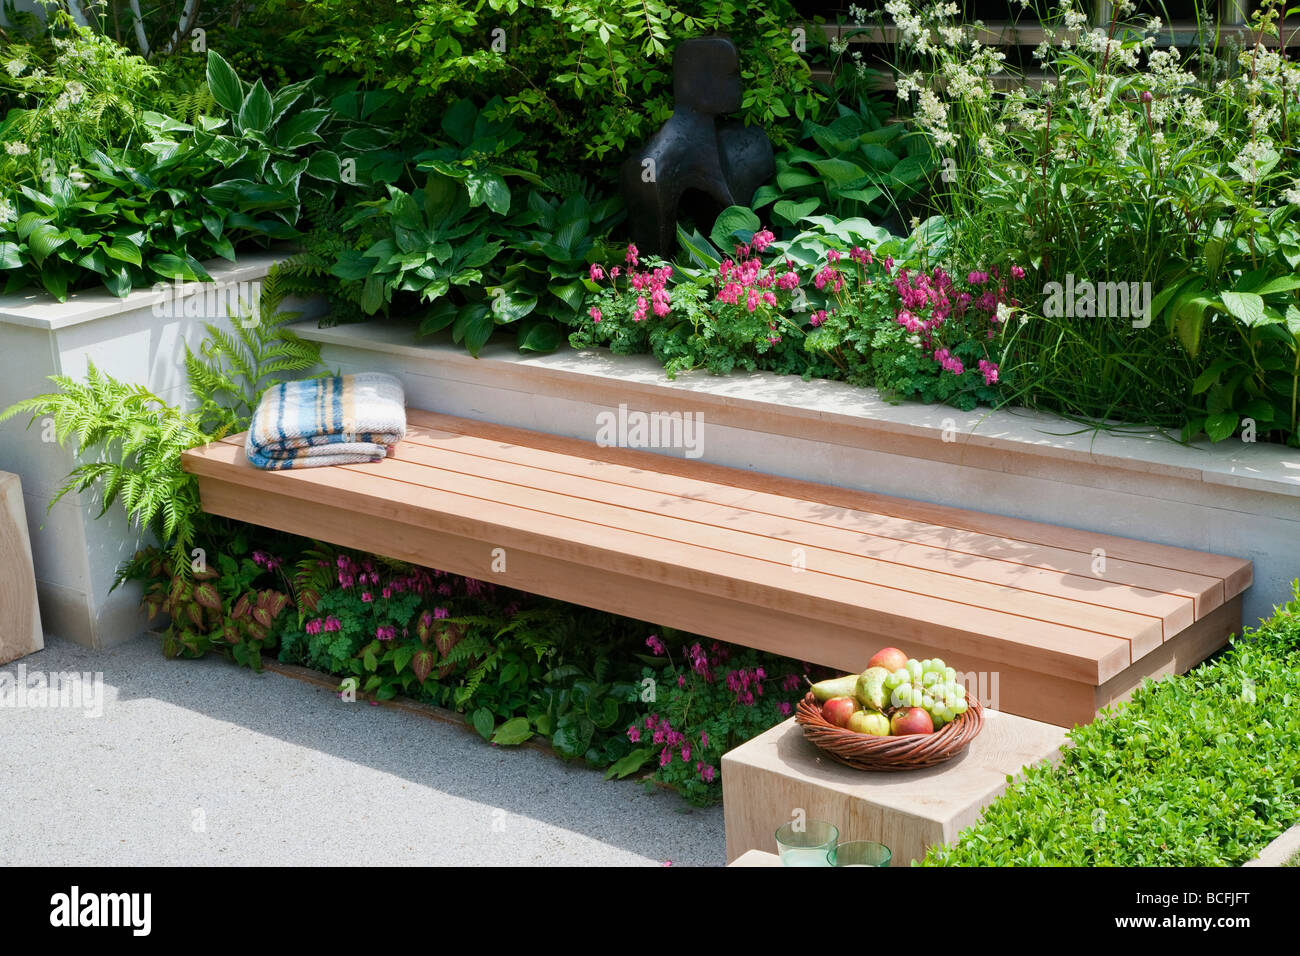 Wooden Bench Surrounded By Geometric Raised Beds. Plants Include Hostas,  Ferns, Dicentra Formosa Cultivar And Peonies